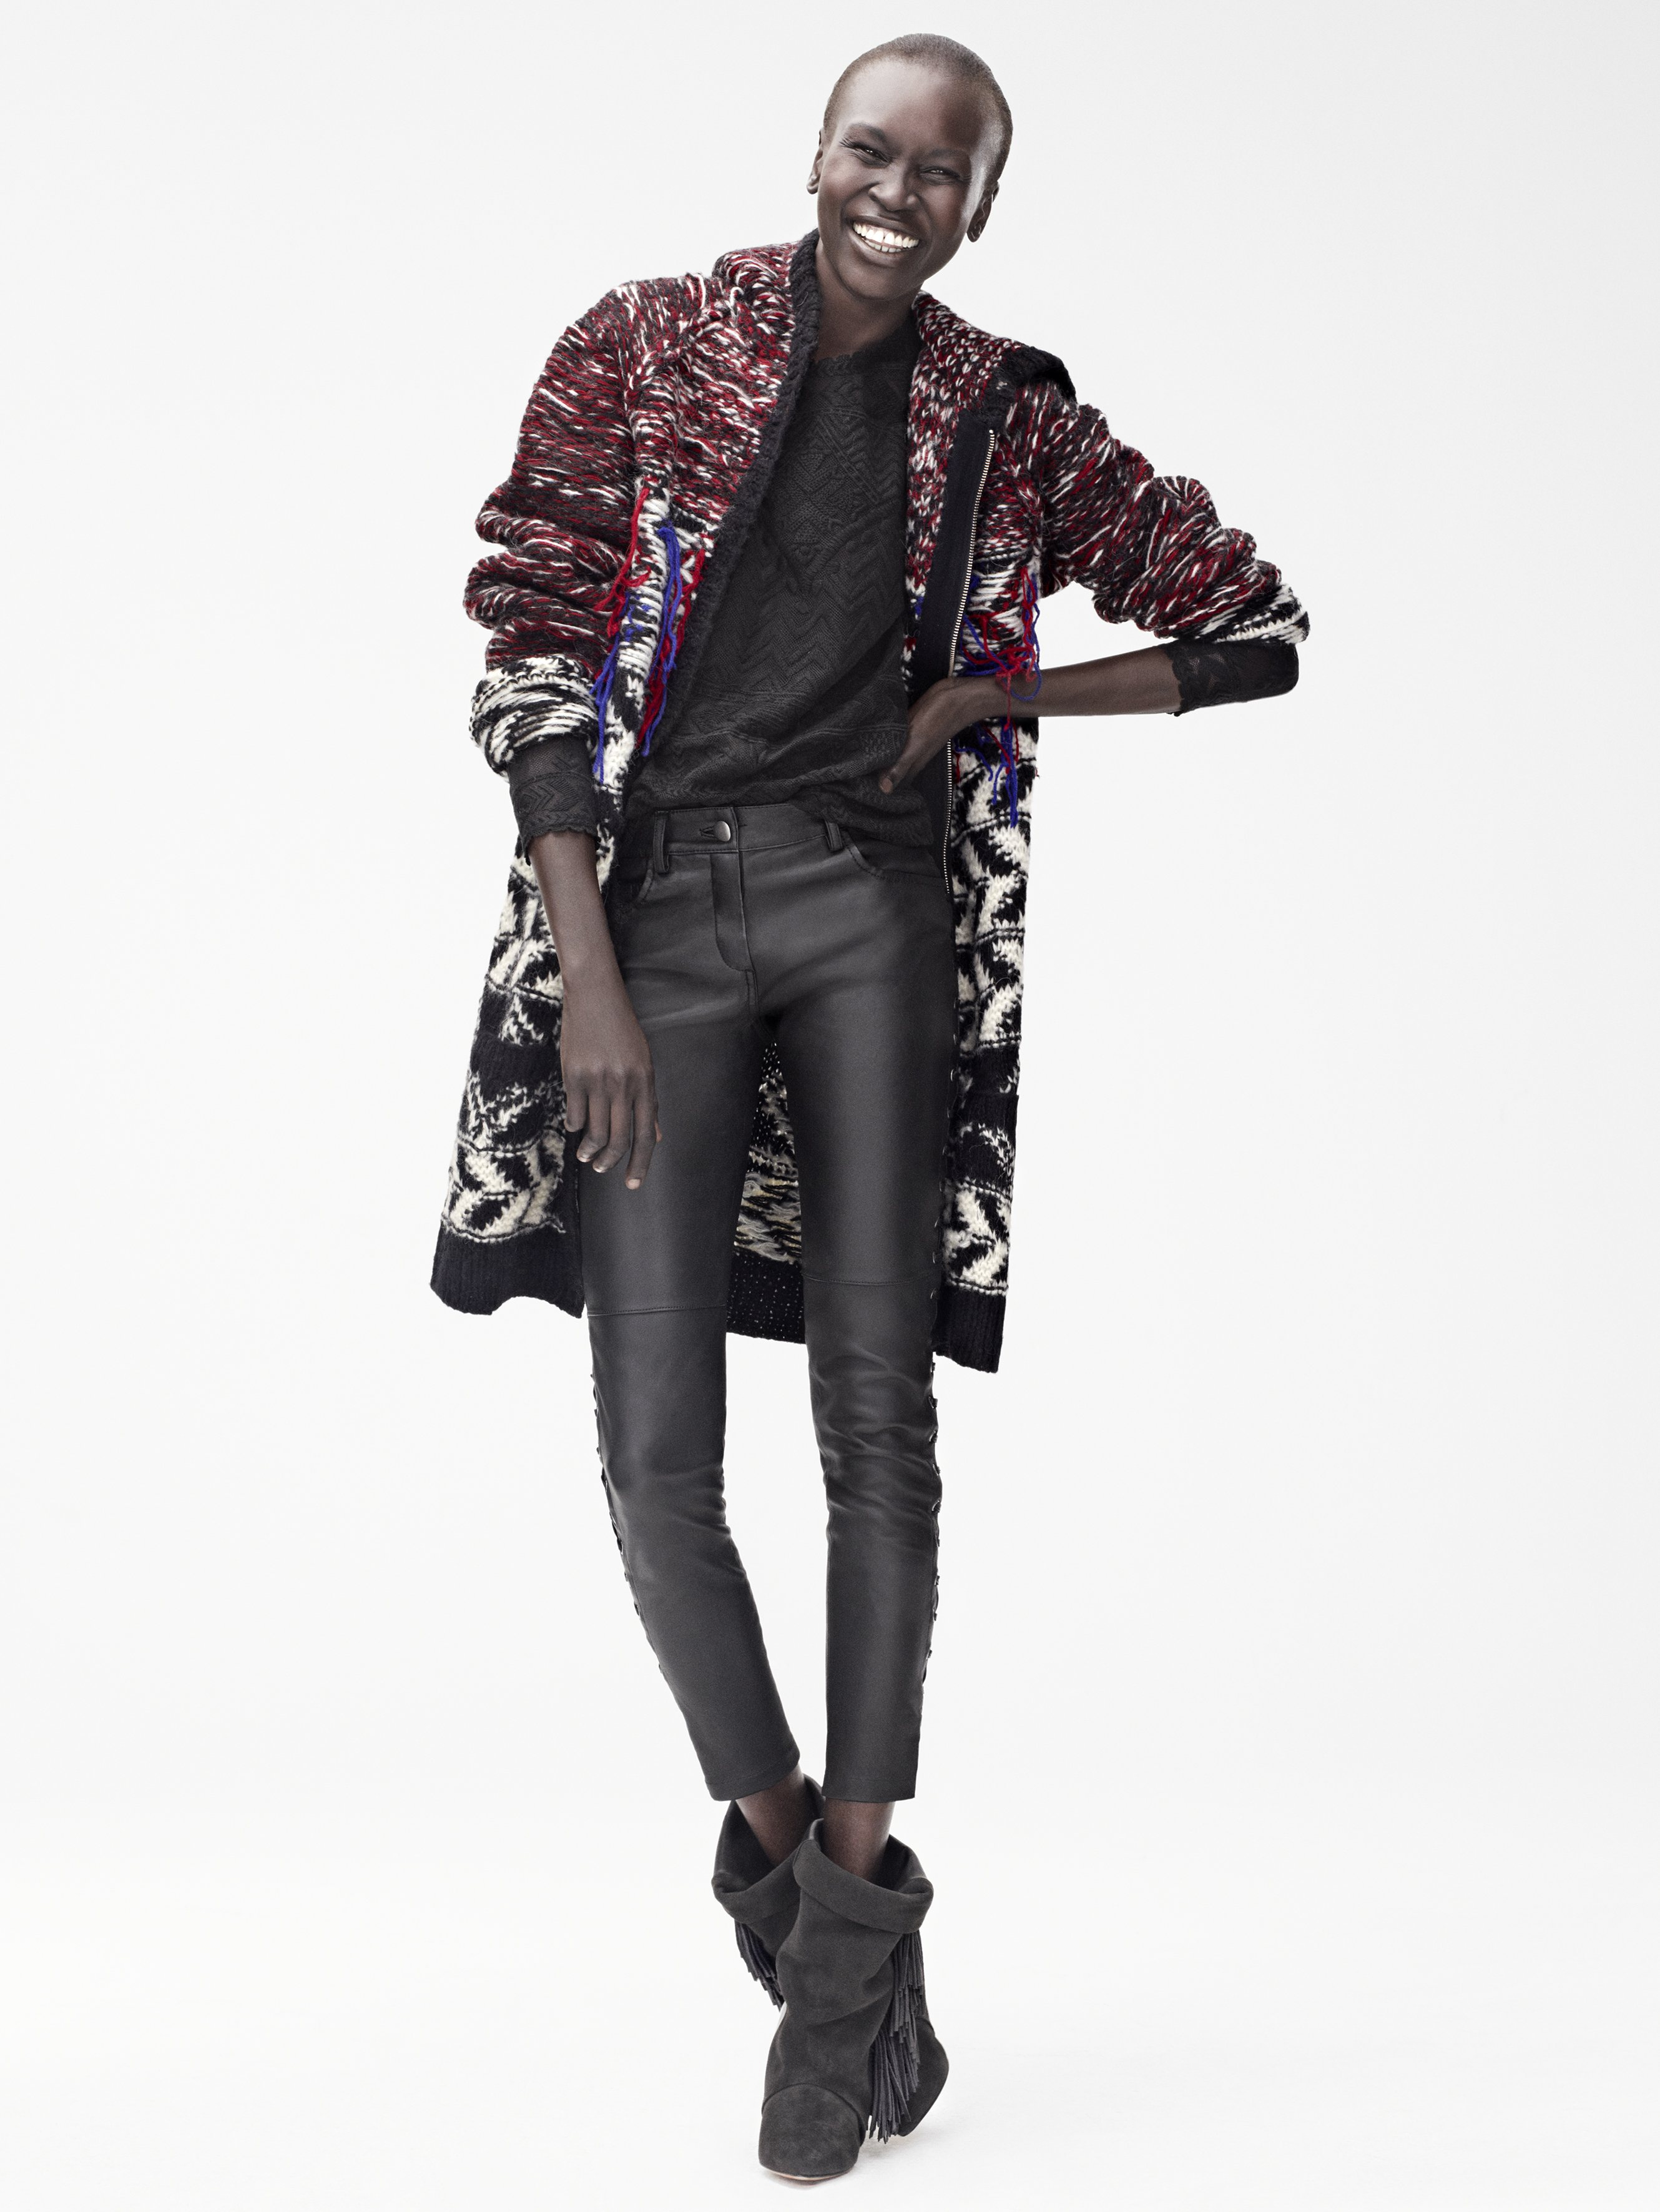 See Isabel Marant pour H&M's FULL lookbook here before the collection hits stores November 14!